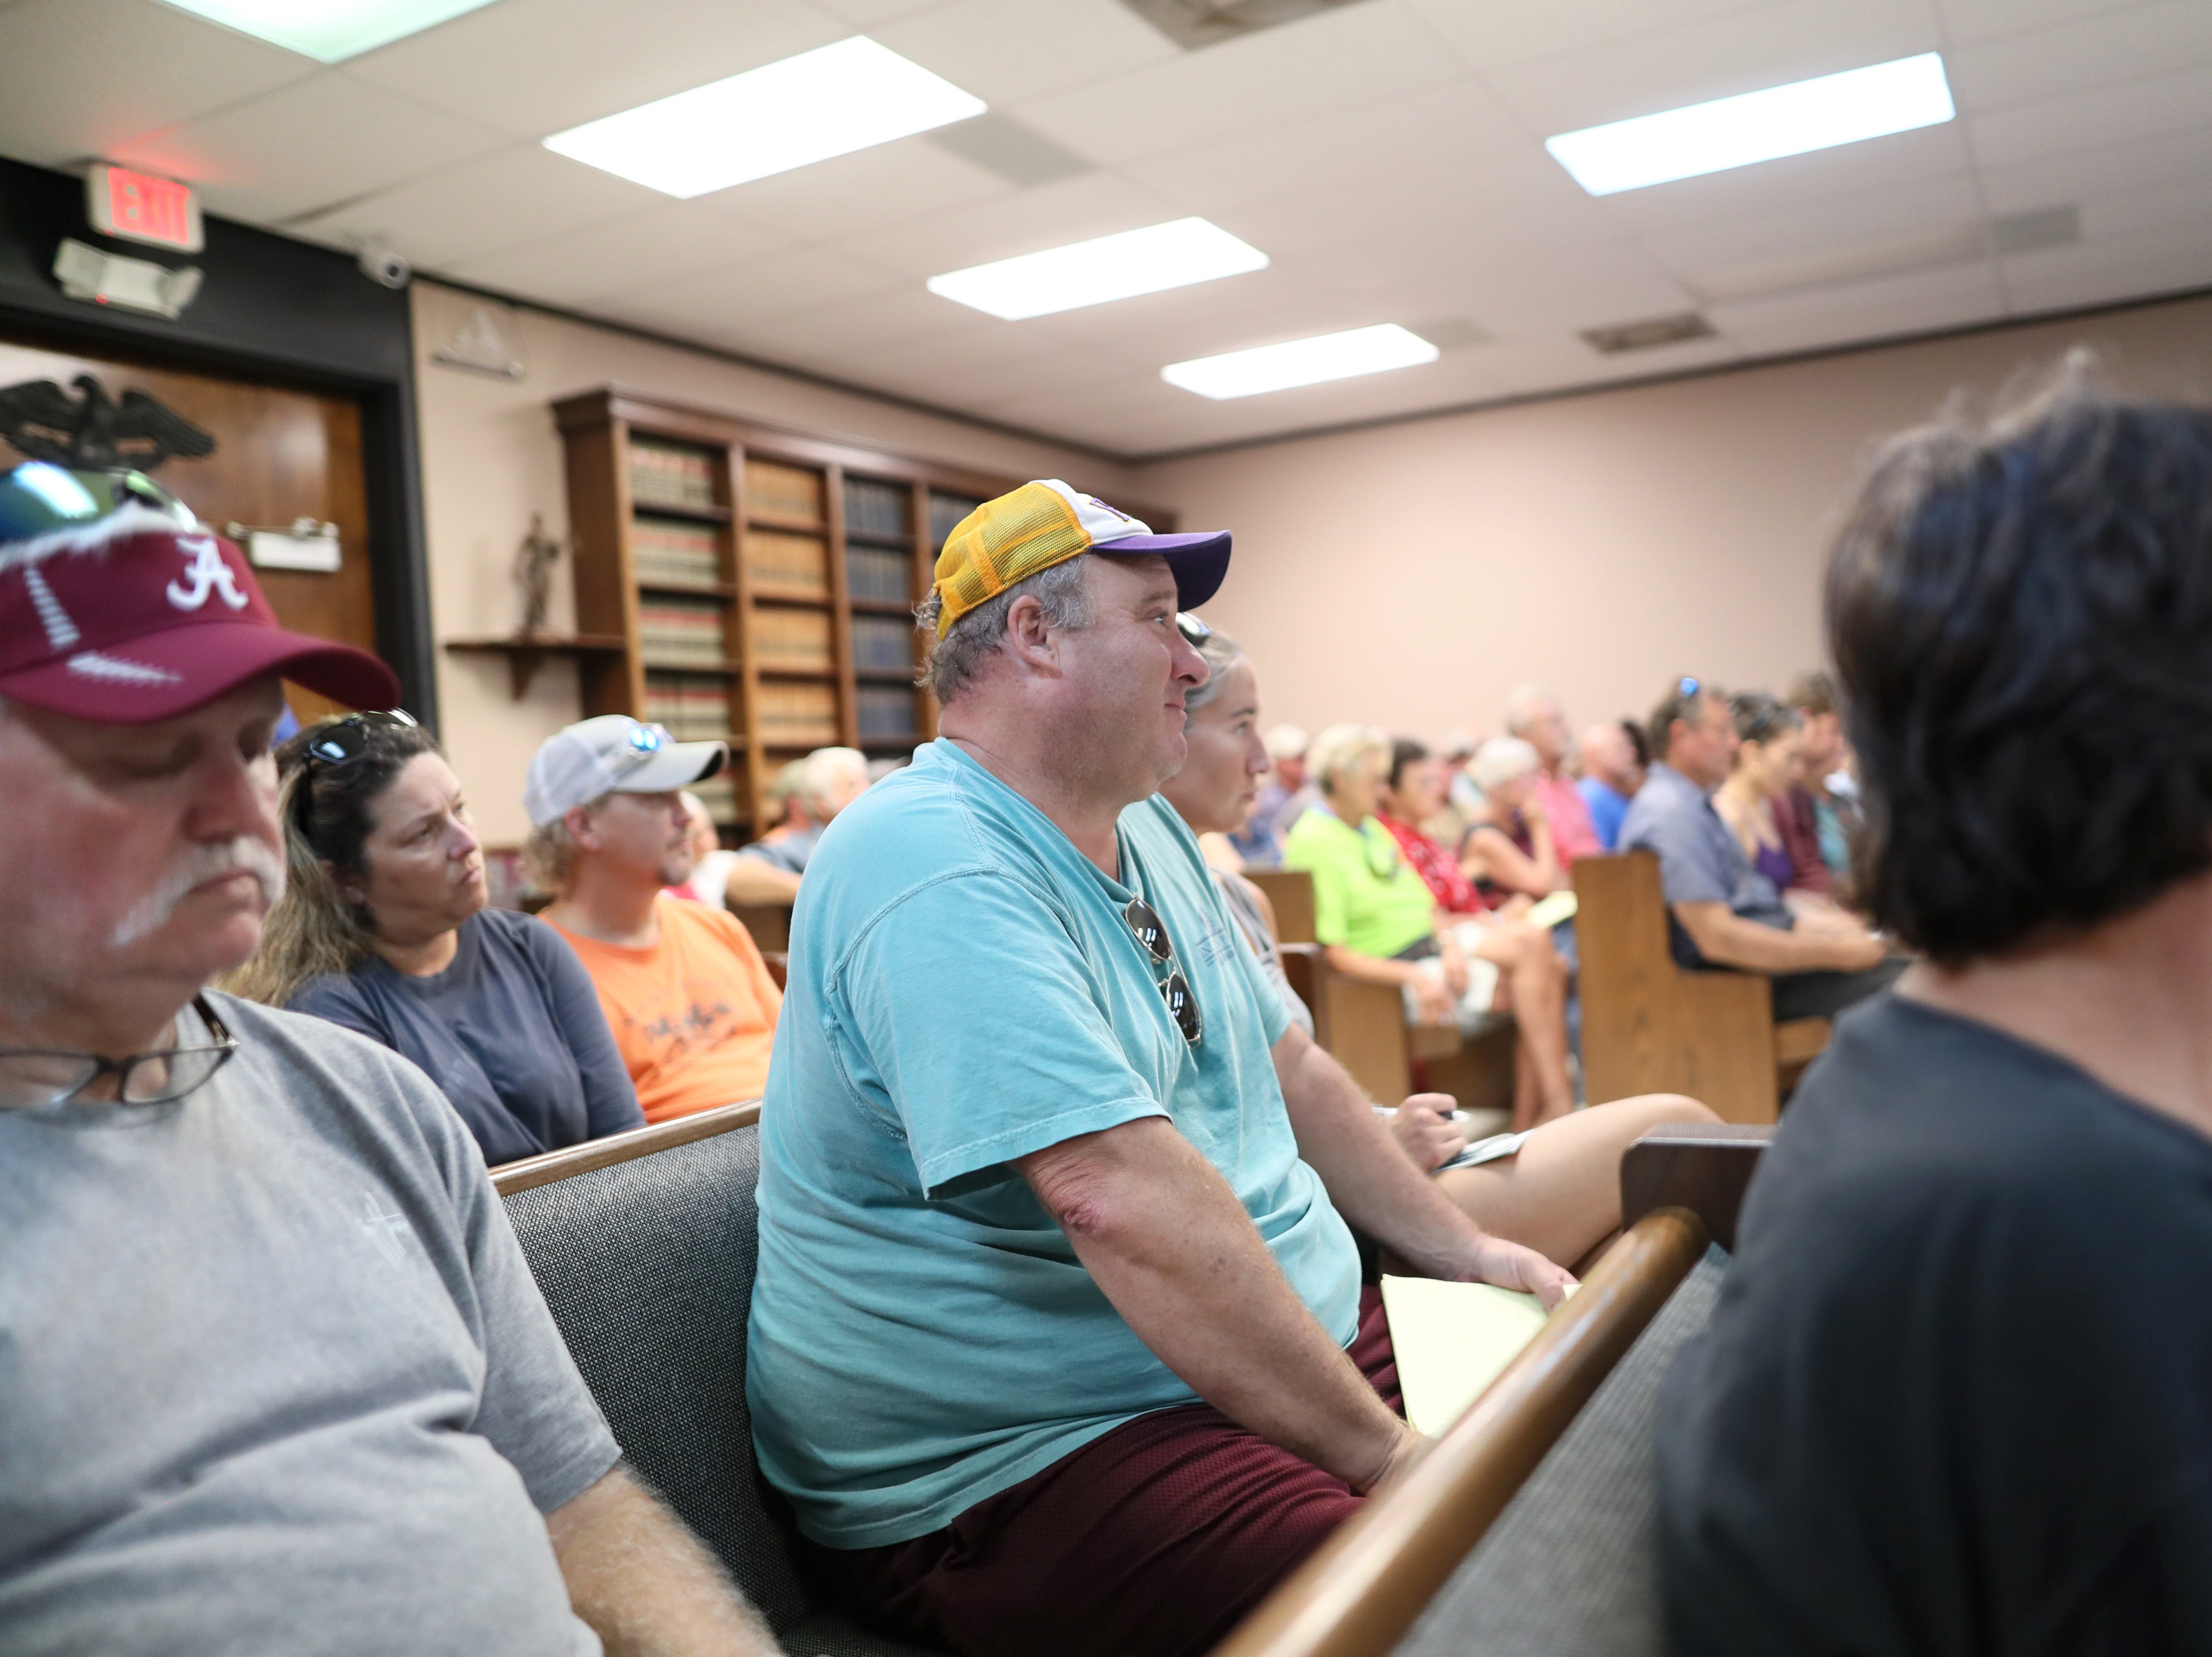 Local business owners sit inside Port St. Joe's county courthouse Tuesday, where state and city officials were sharing plans for disaster relief loans after the town was devastated by Hurricane Michael.